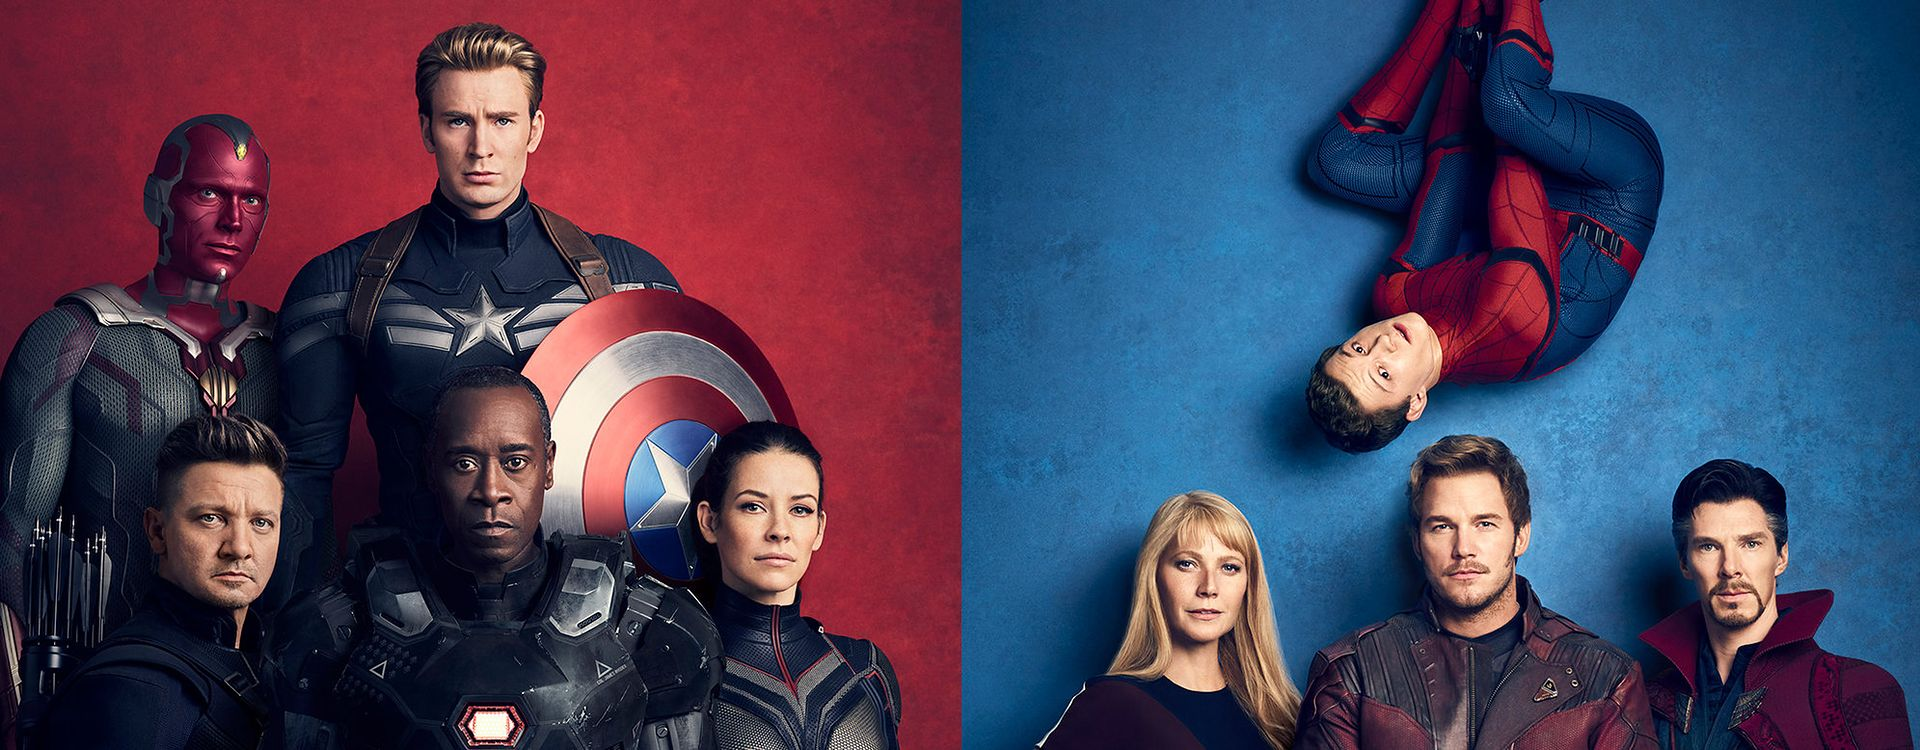 Superbohaterowie Marvela, fot. Jason Bell; styled by Jessica Diehl, postprod. House of Retouching